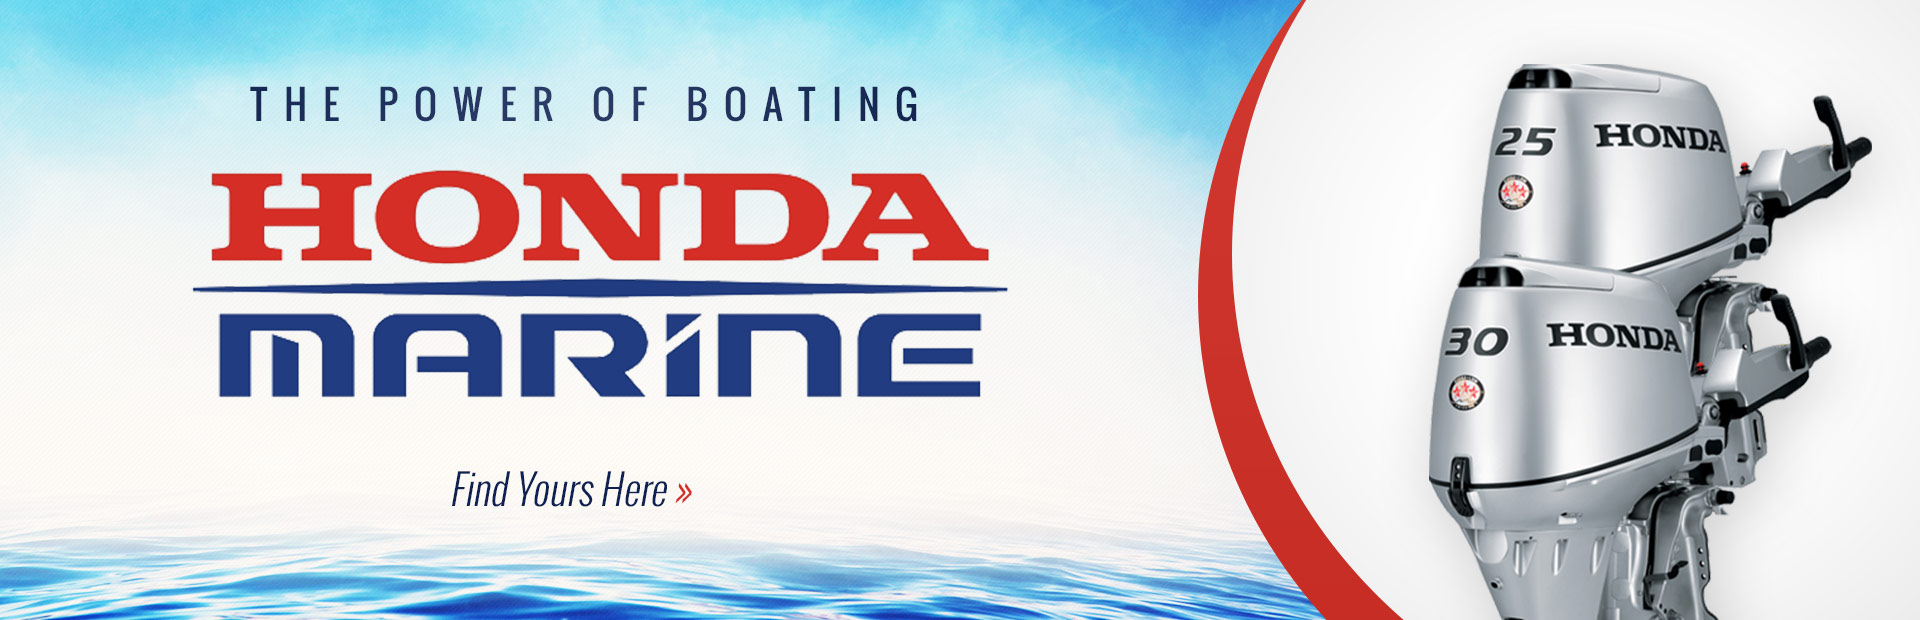 Honda Marine: The Power of Boating